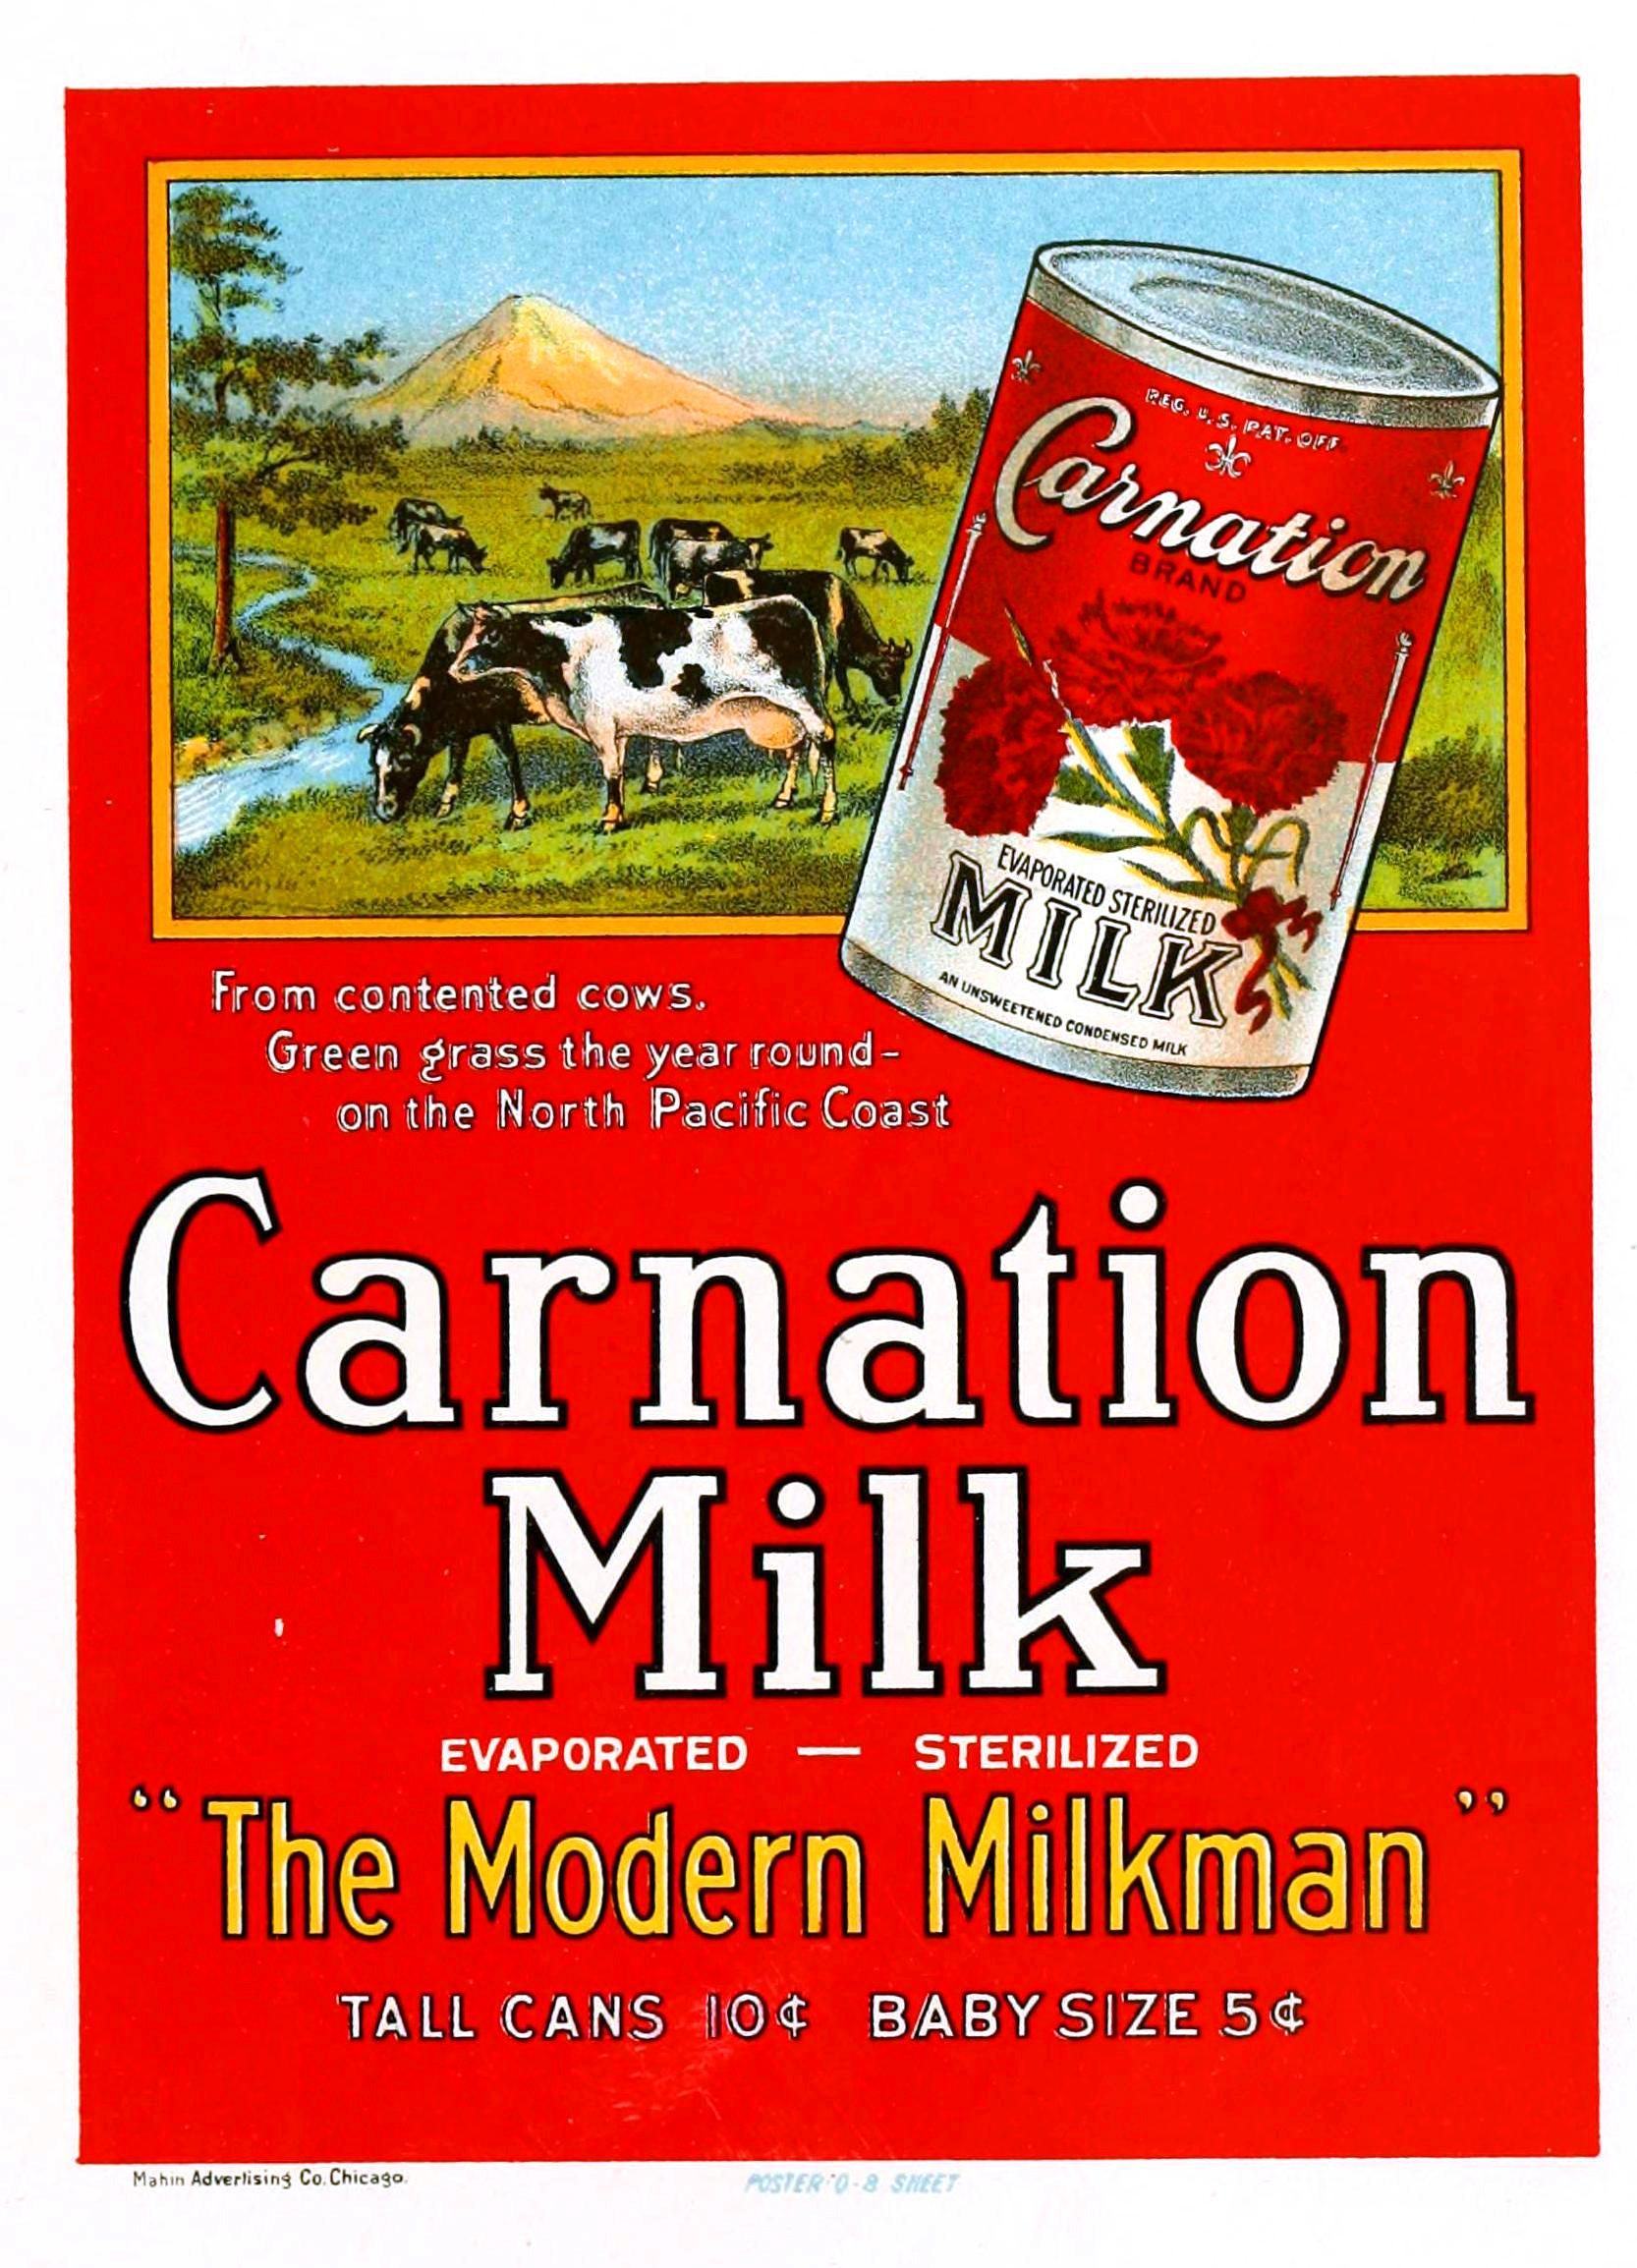 Carnation milk Old Advertising Poster reproduction